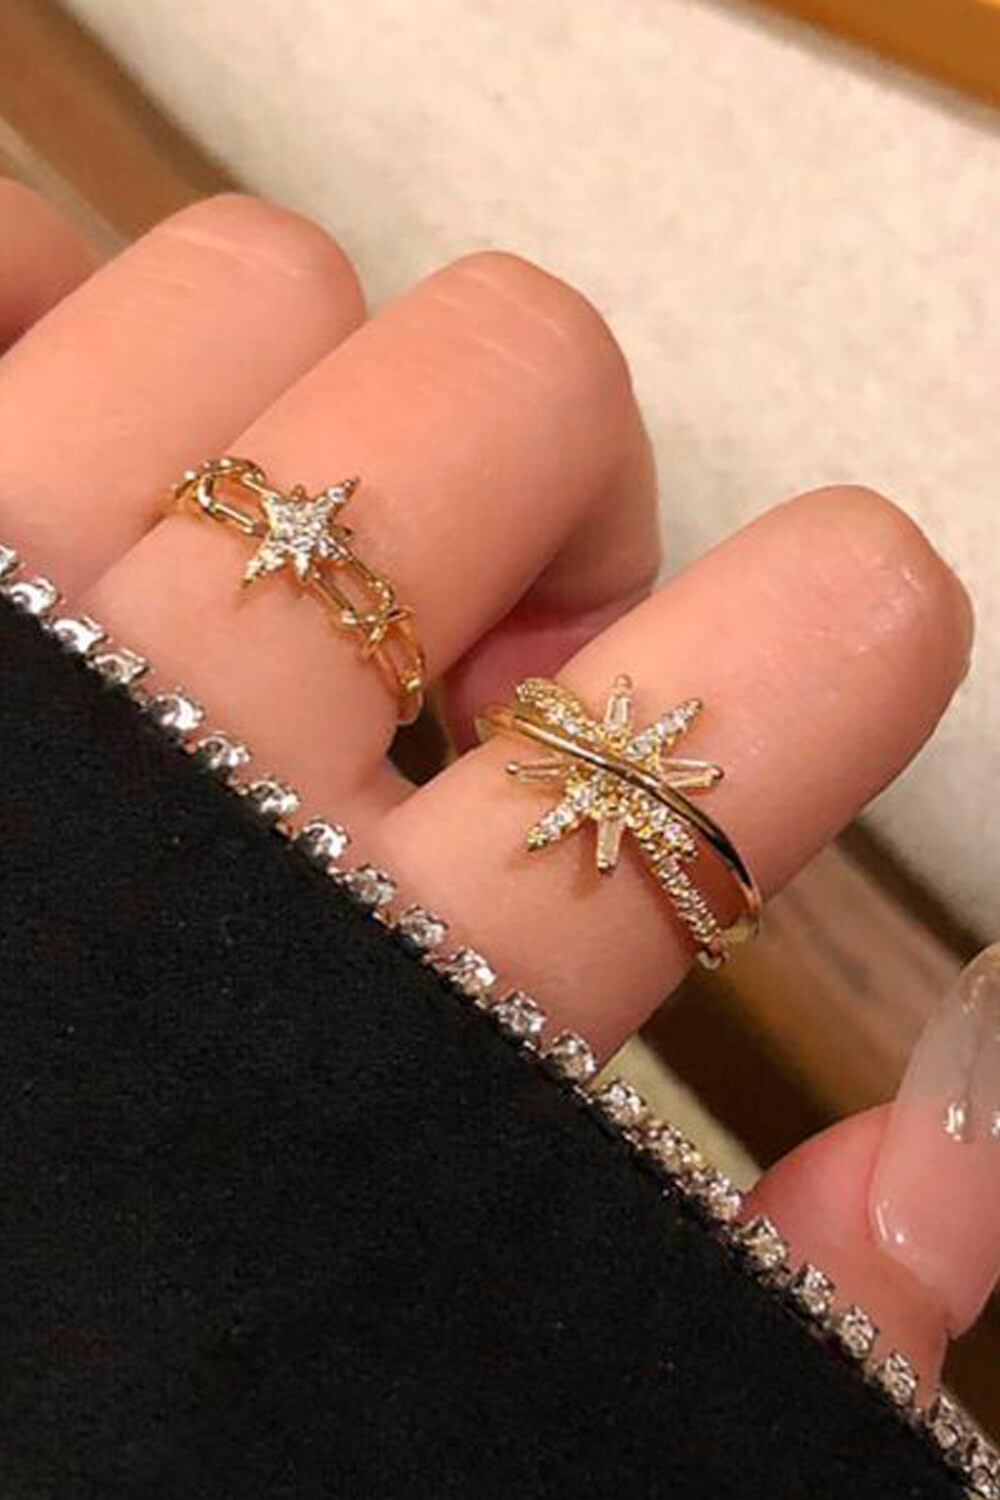 Star Princess Spacecore Aesthetic Ring